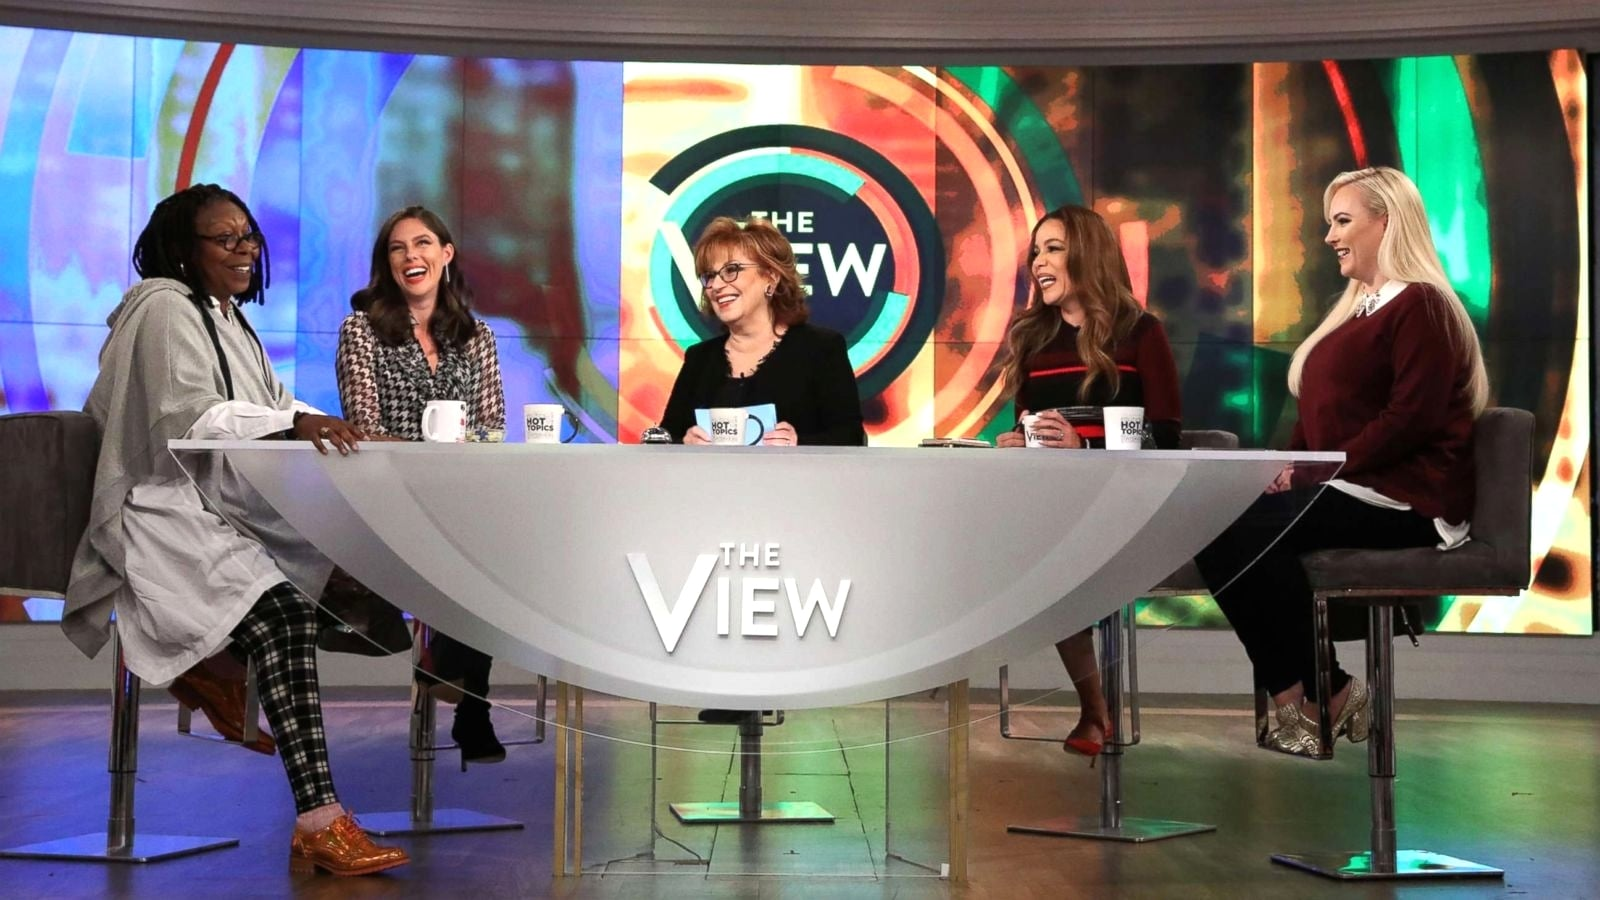 The View - Season 3 Episode 30 : Season 3, Episode 30